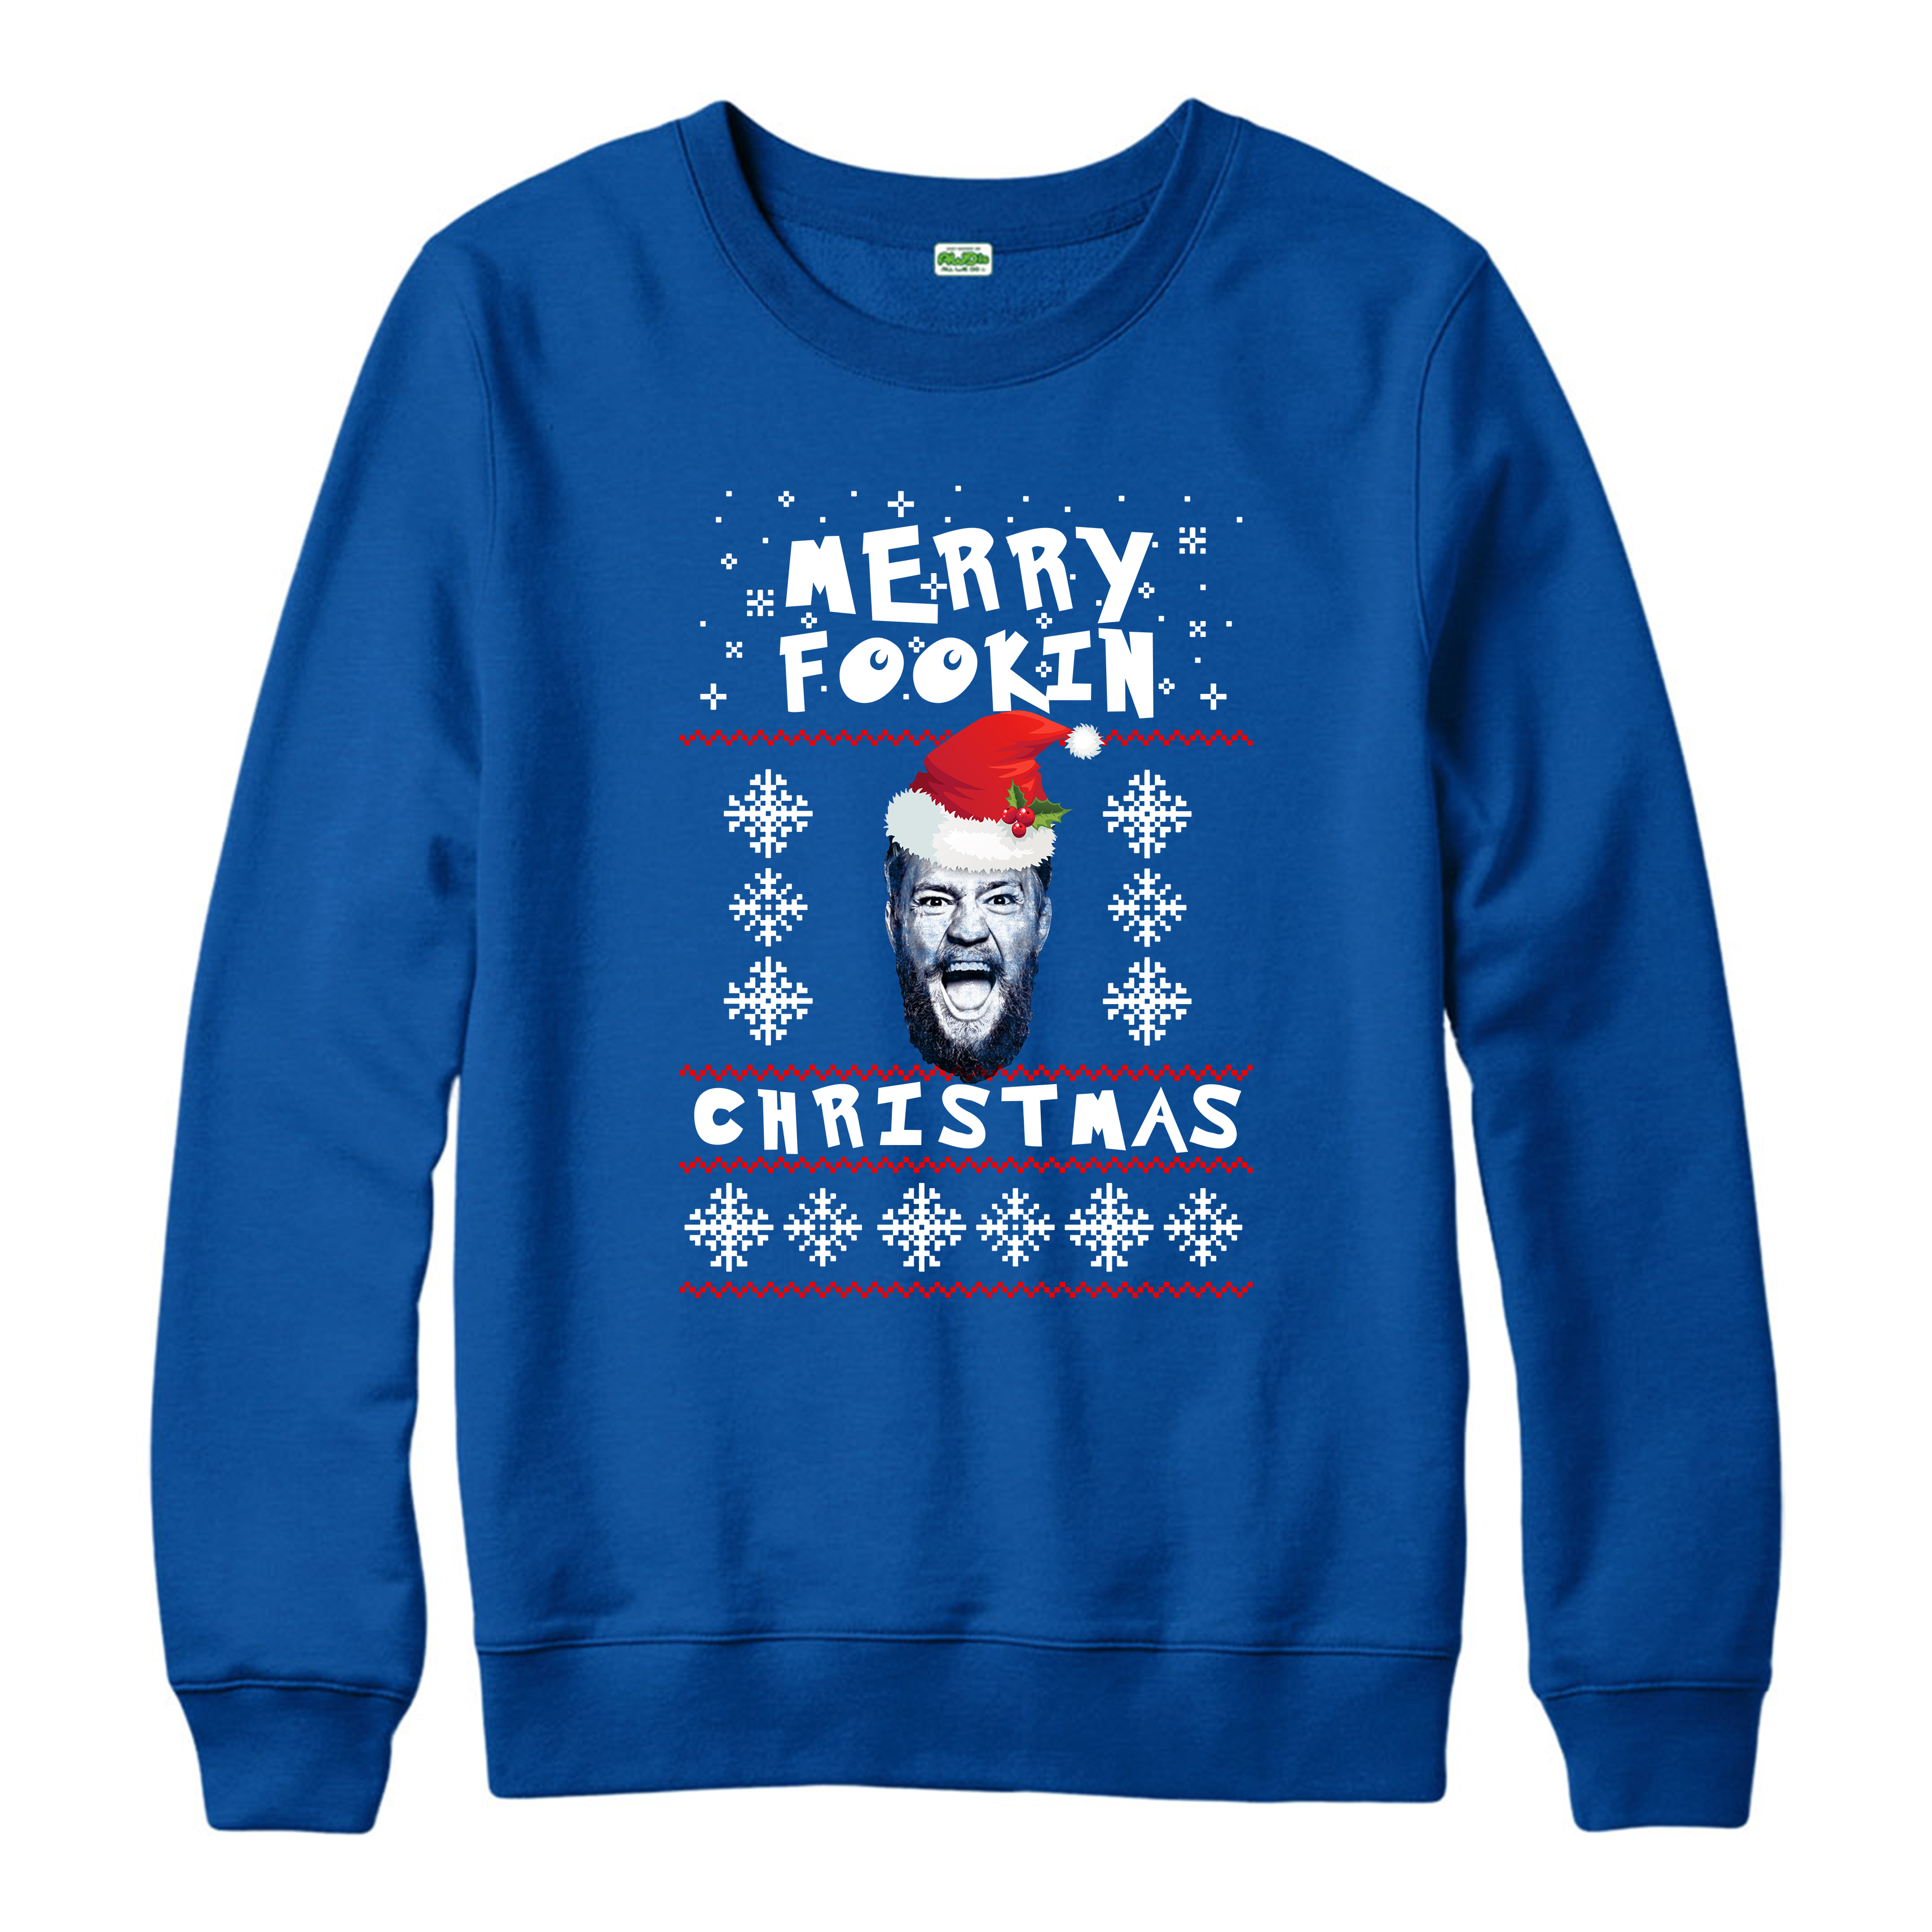 Merry-Fookin-Christmas-Jumper-Conor-Mcgregor-Xmas-Spoof-Adult-And-Kids-Sizes